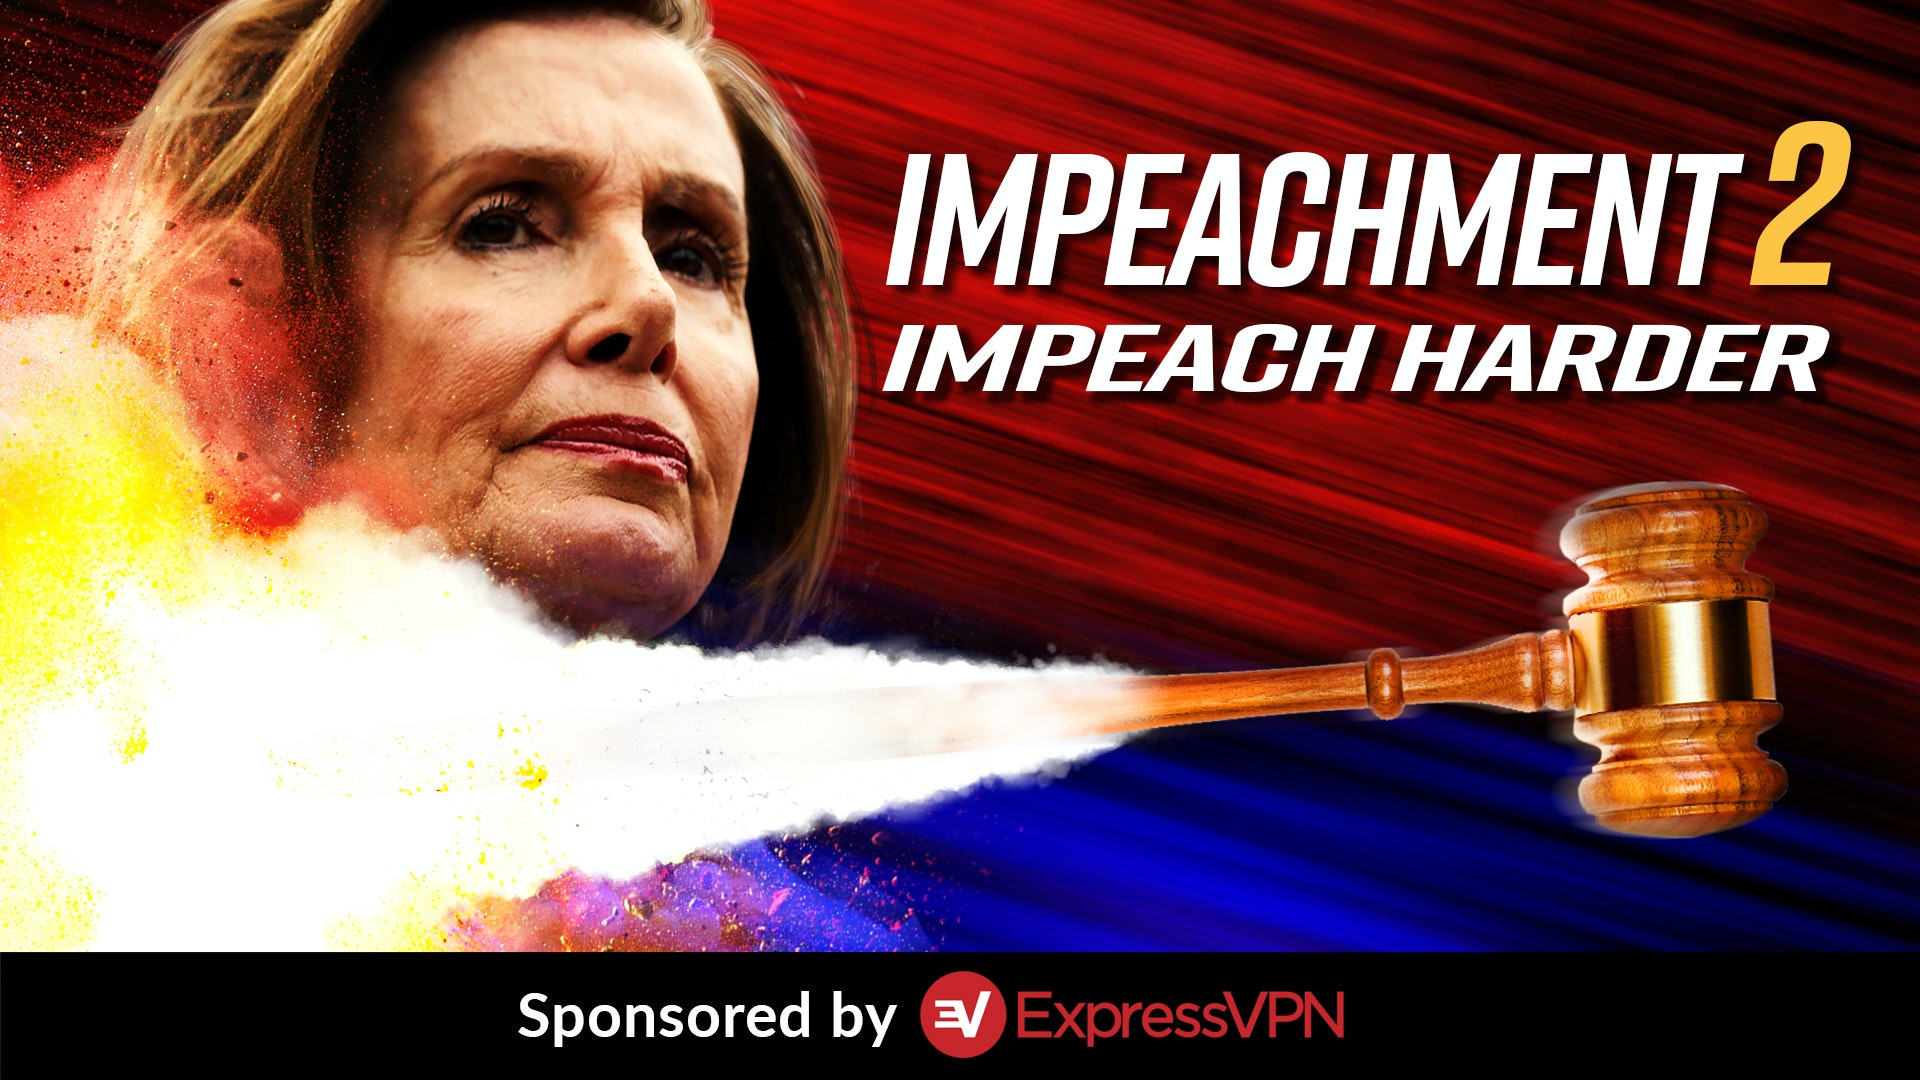 Ep. 1173 - Impeachment 2: Impeach Harder